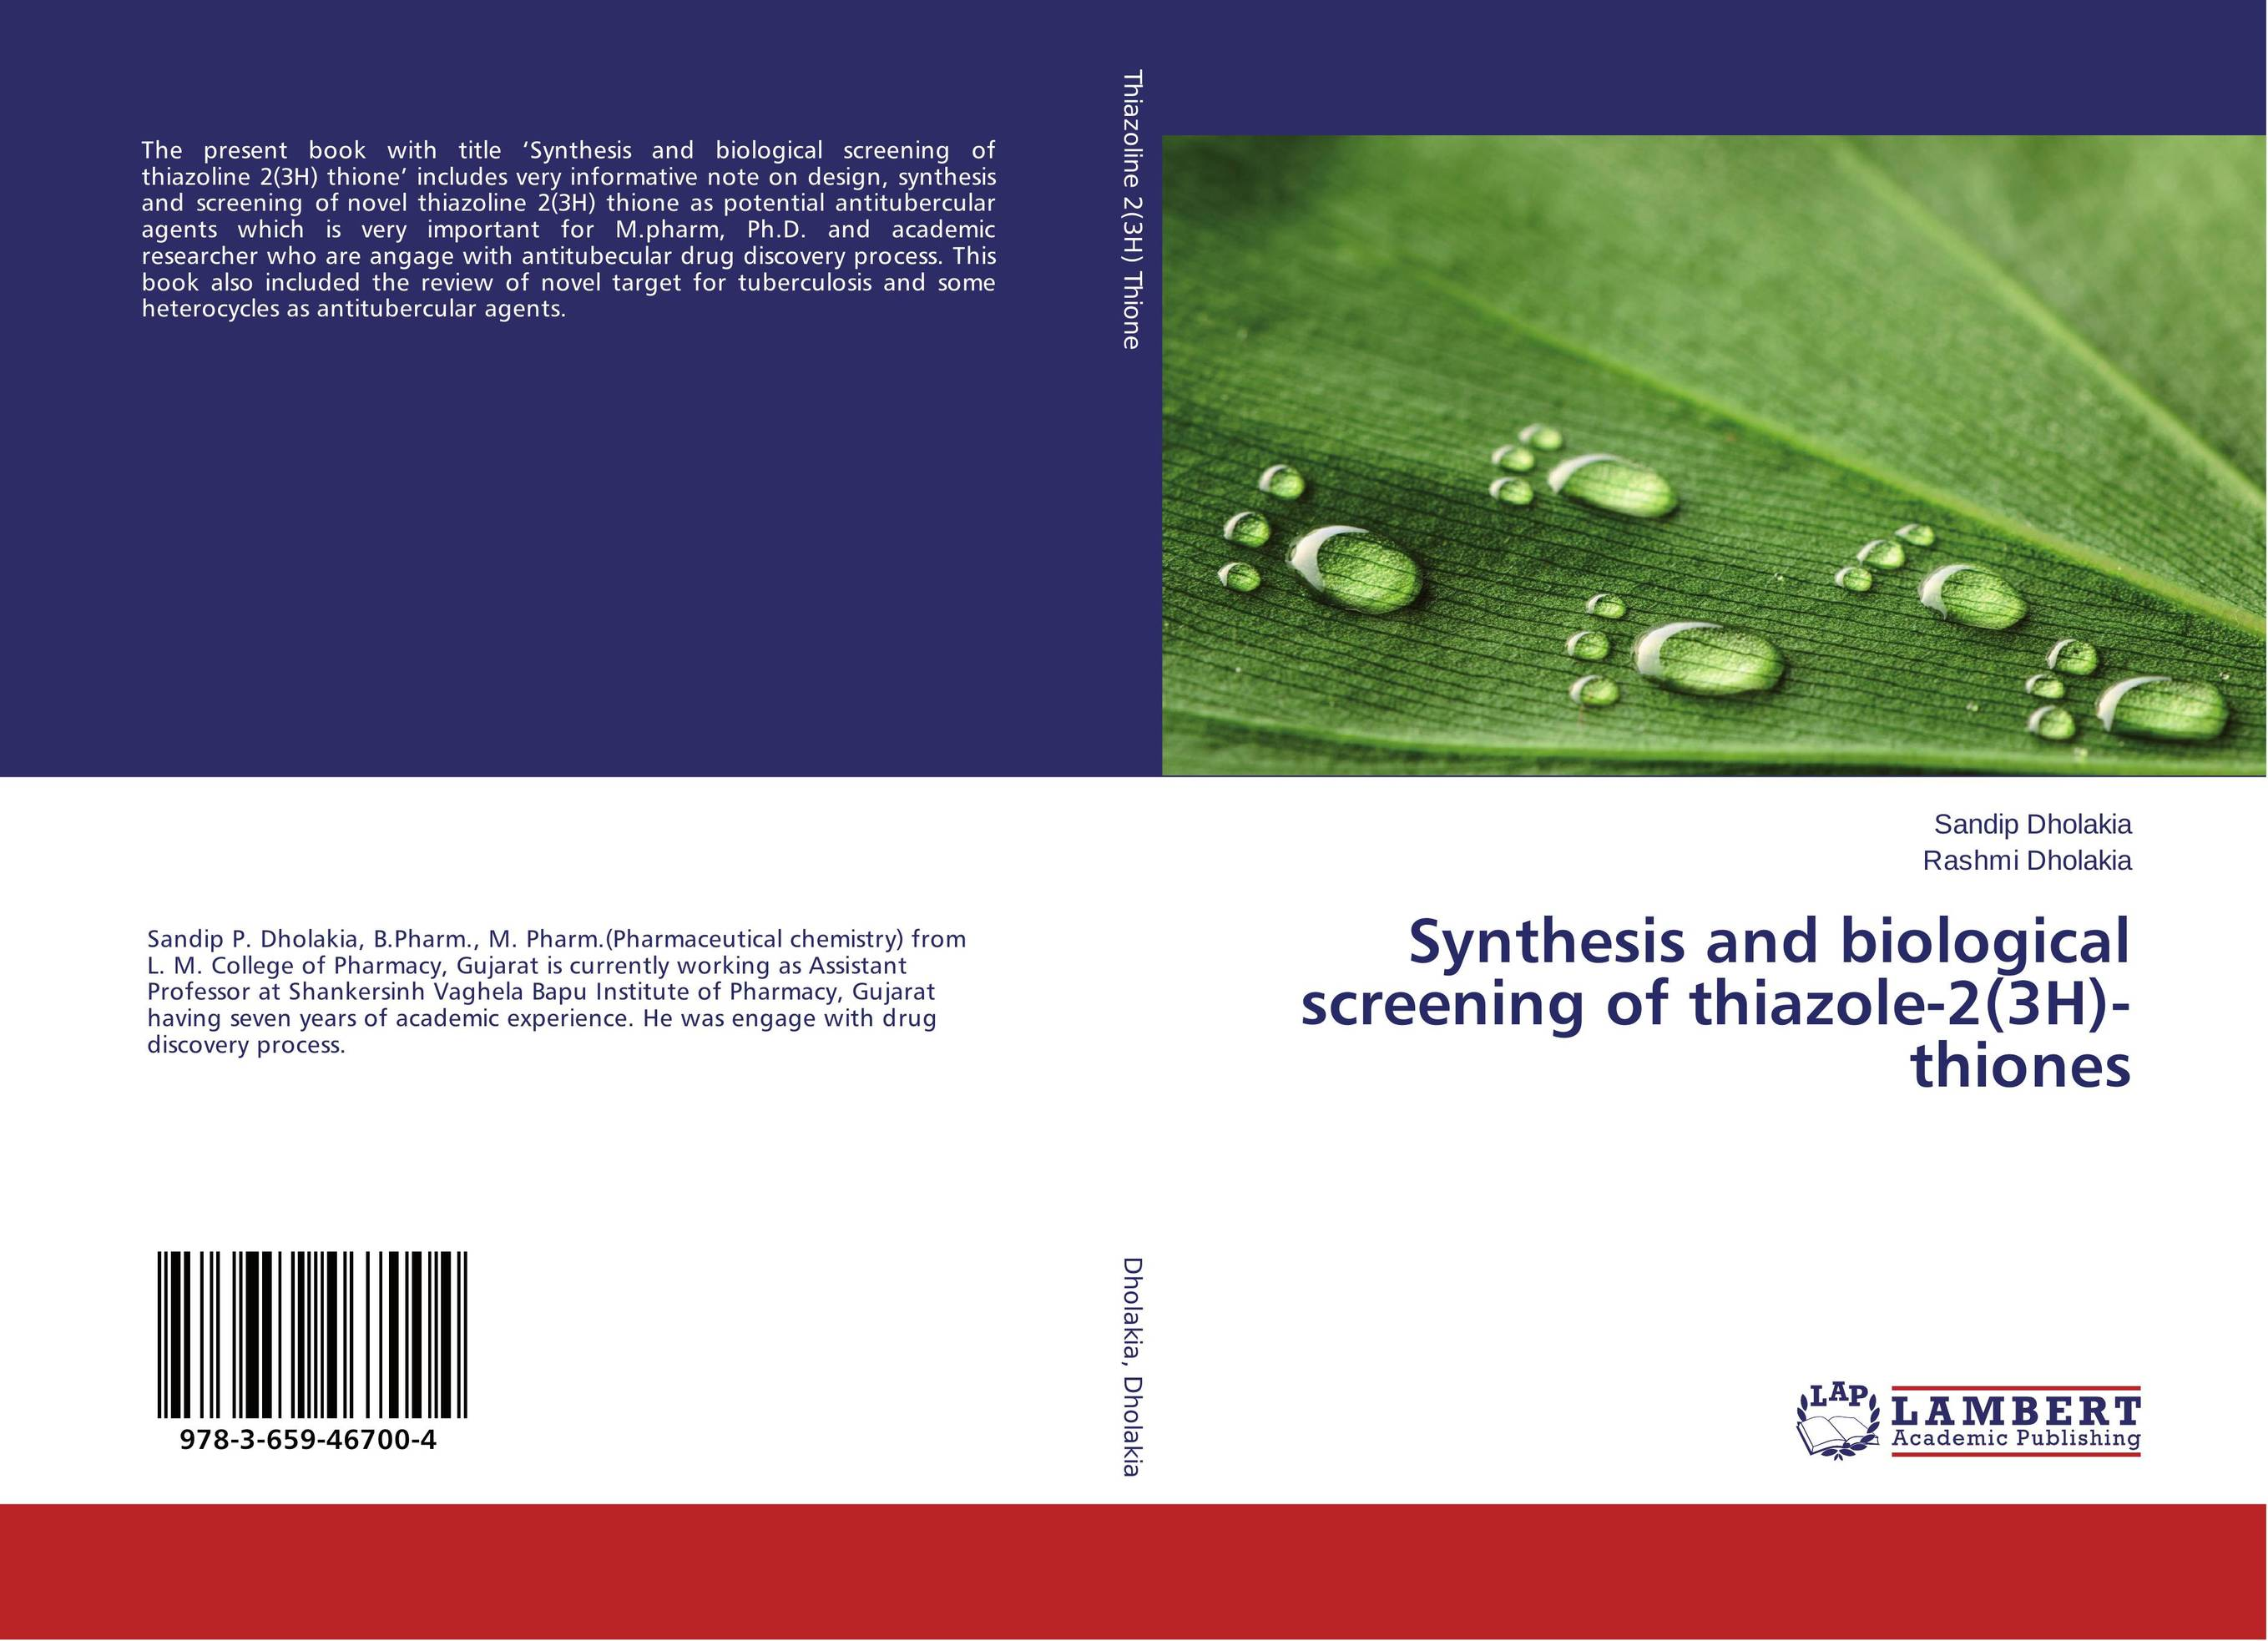 Synthesis and biological screening of thiazole-2(3H)-thiones drug discovery and design